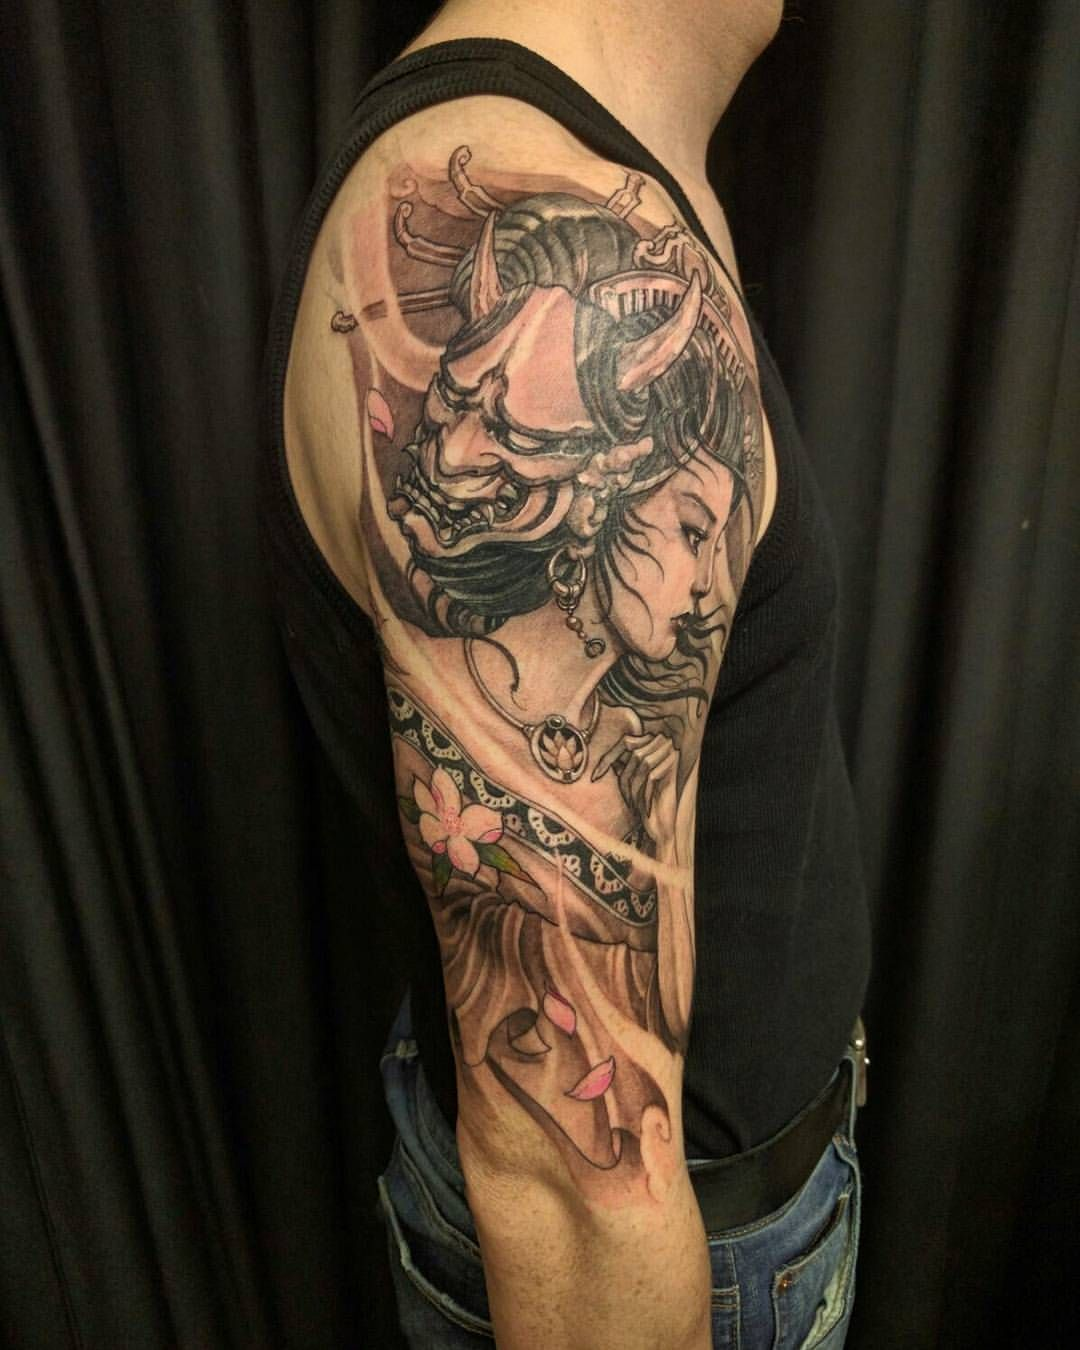 Another angle geisha chronicink asiantattoo asianink - Tattoos geishas japonesas ...